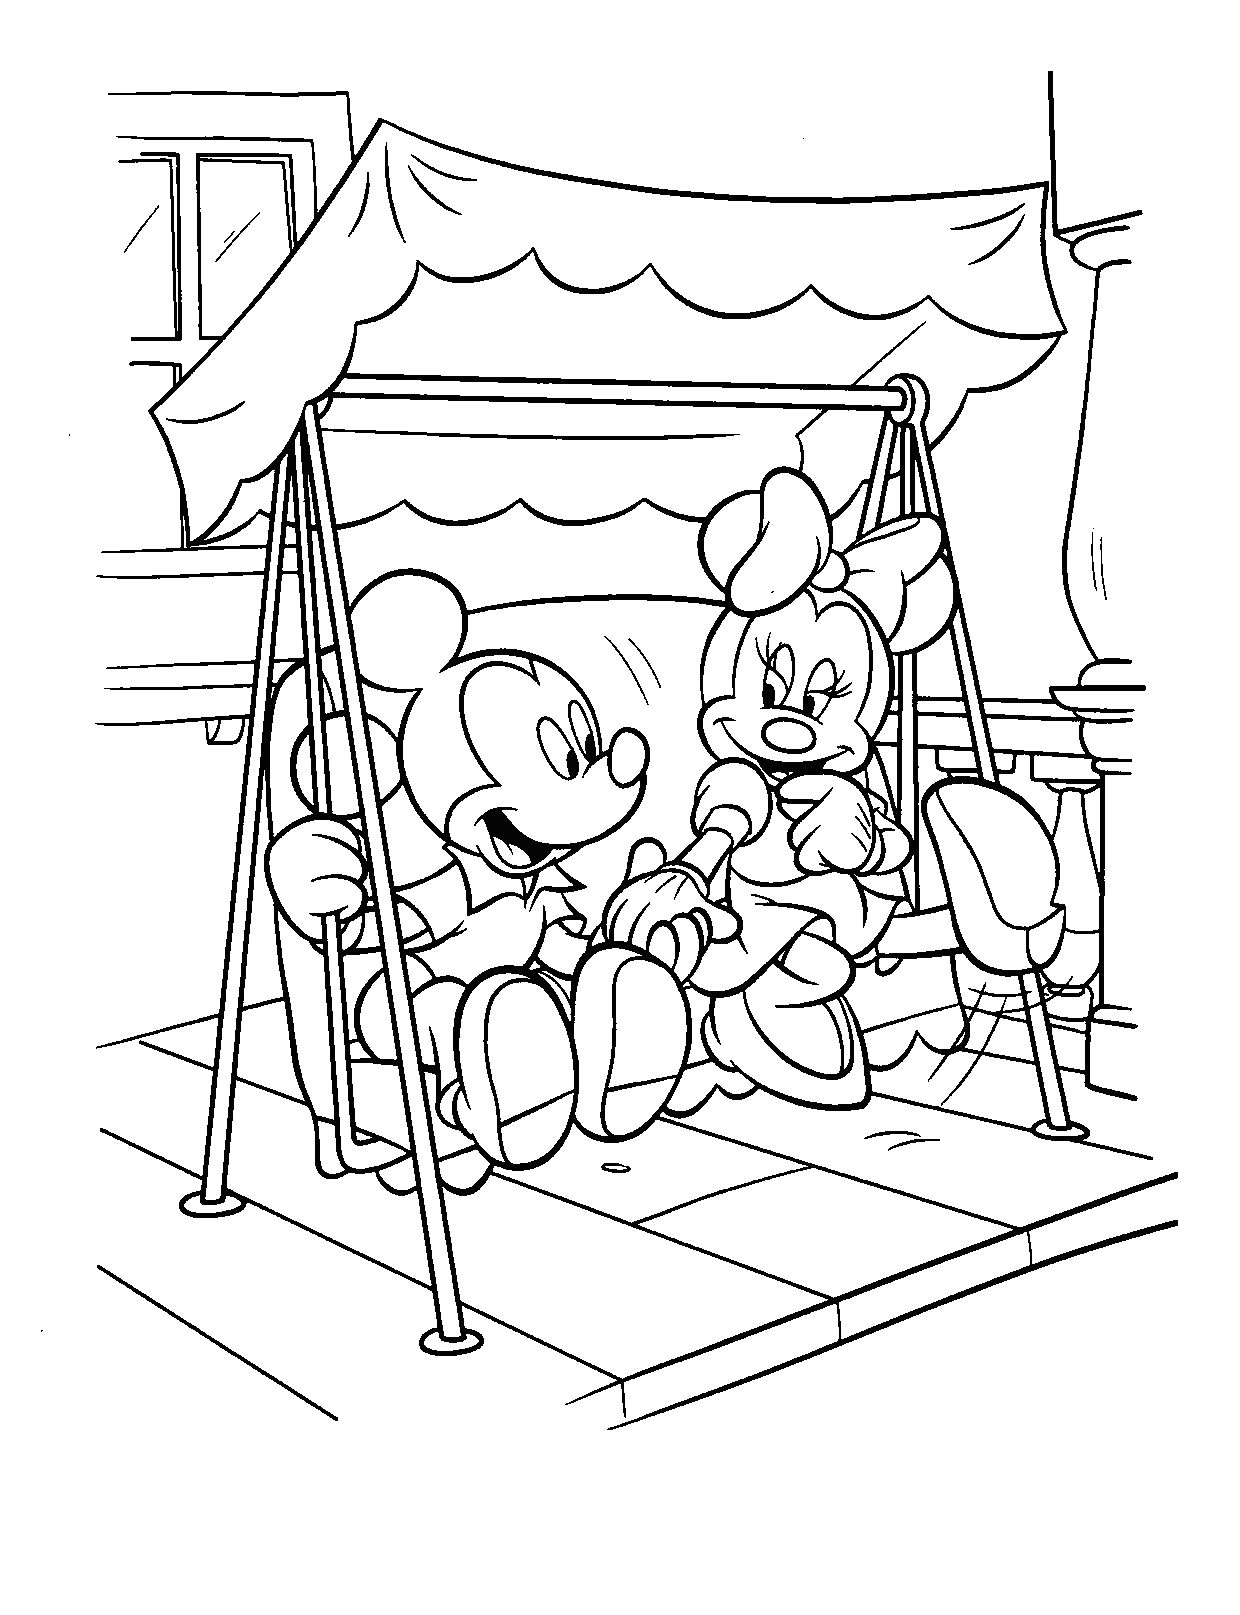 Coloring Pages Of Mickey And Minnie Mouse